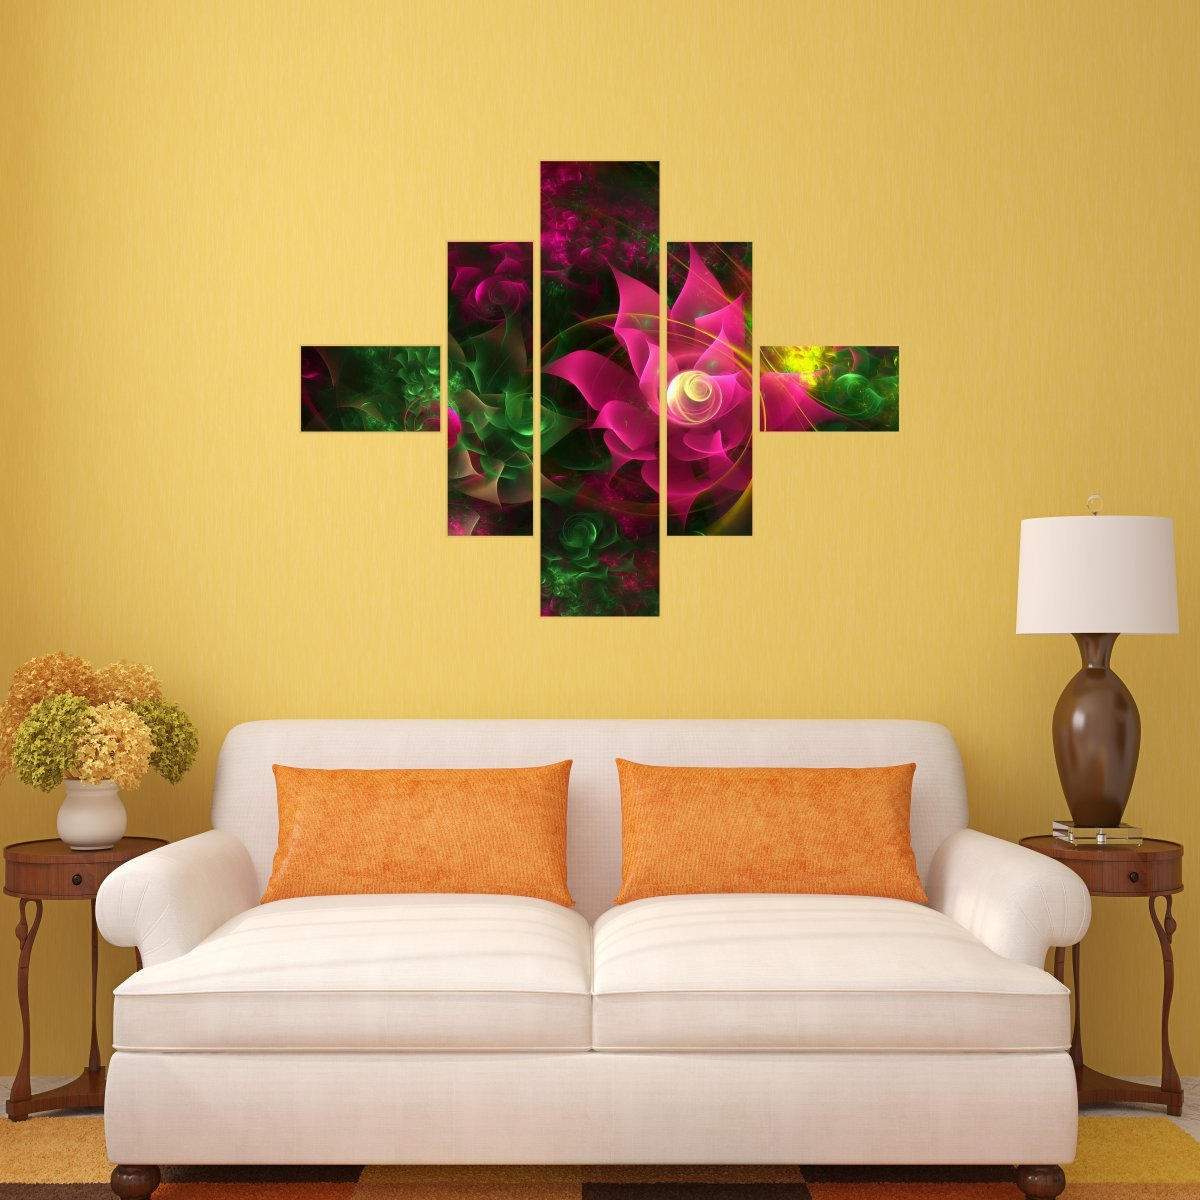 3D Painting: Buy 3D Painting Online at Best Prices in India - Amazon.in